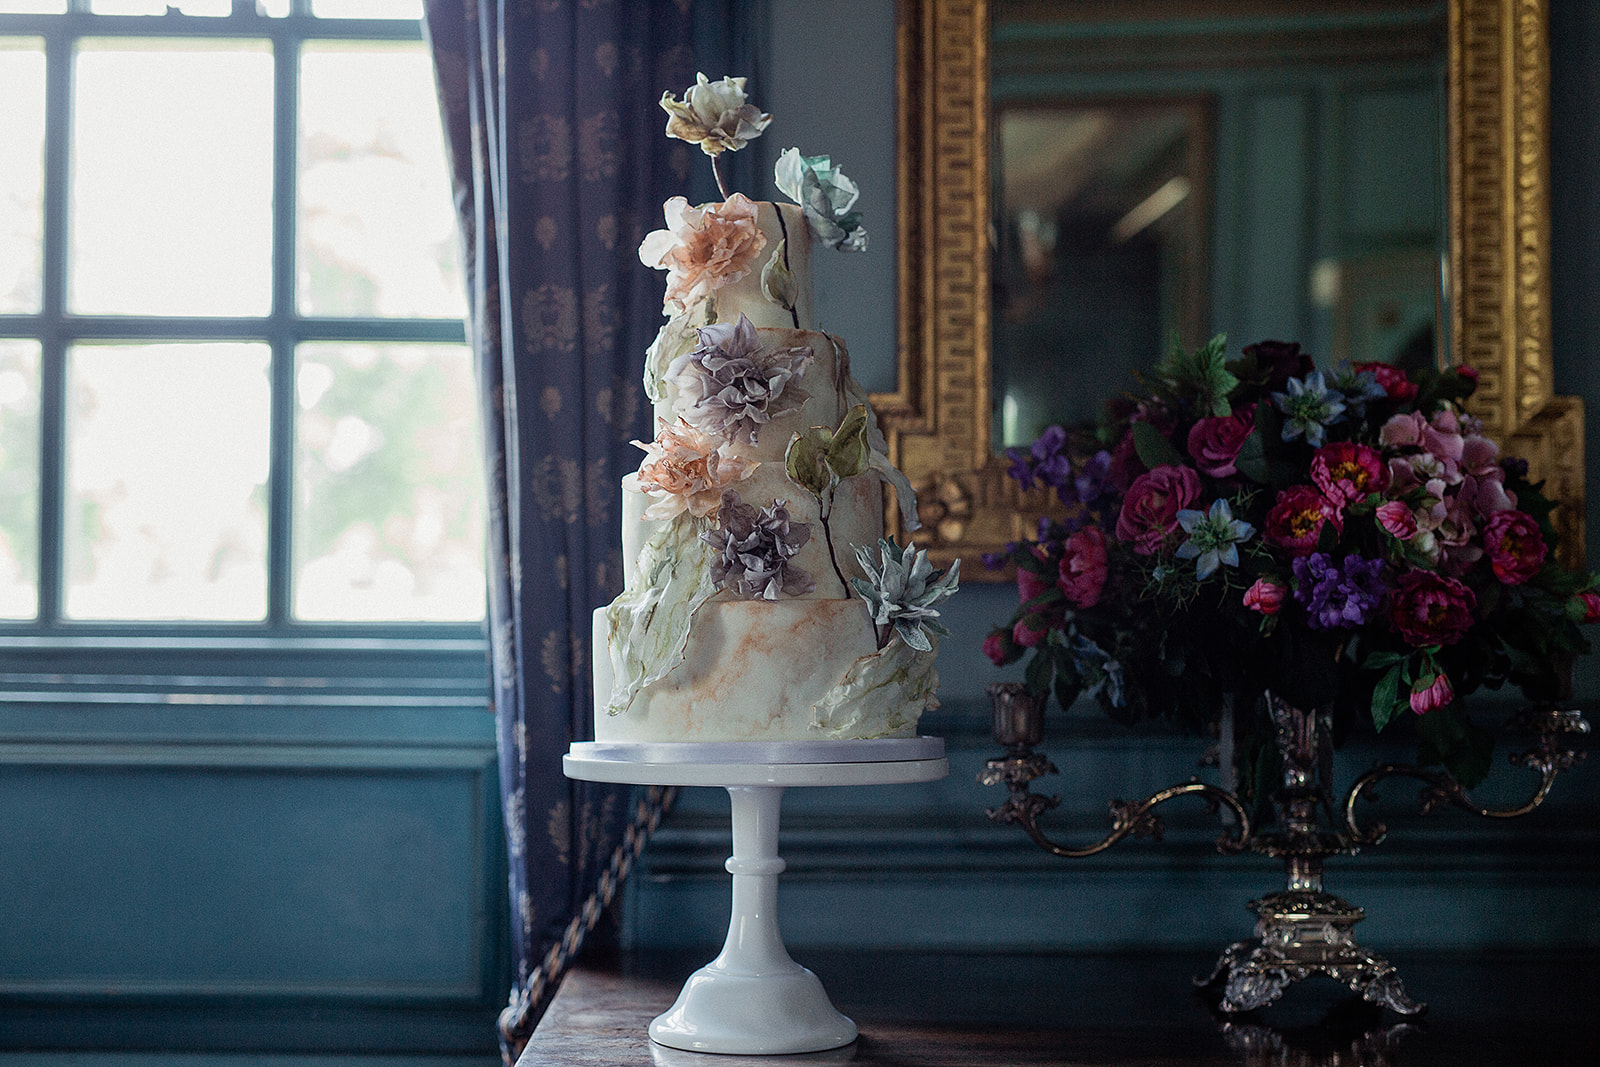 Wafer paper flower wedding cake green and gold in turquoise room.jpg